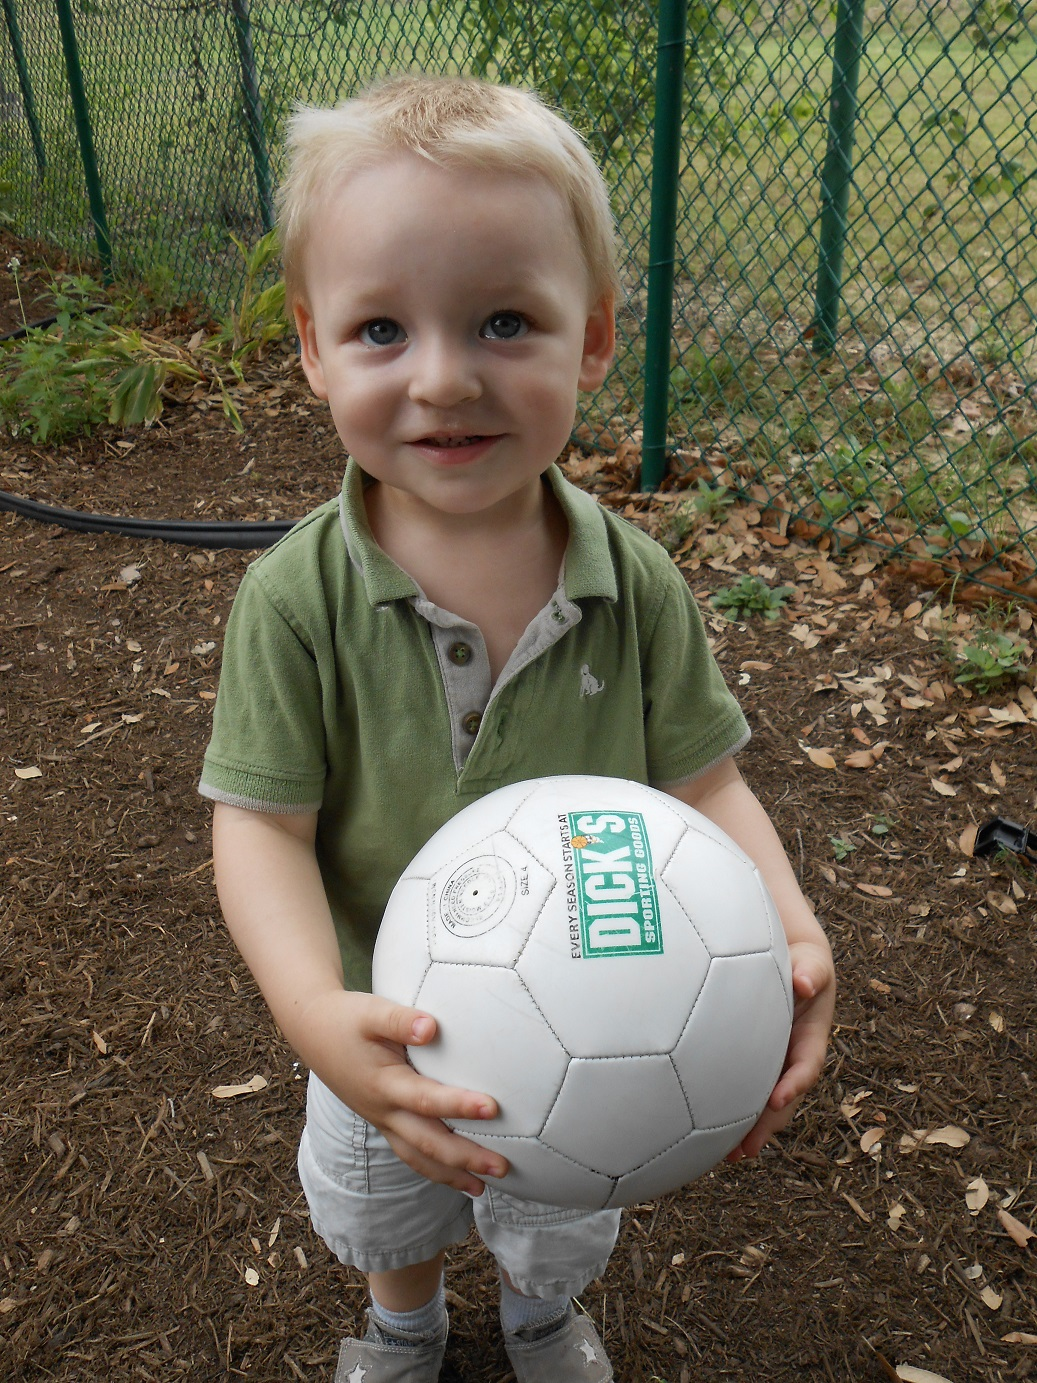 Toddler Soccer = Awesome!